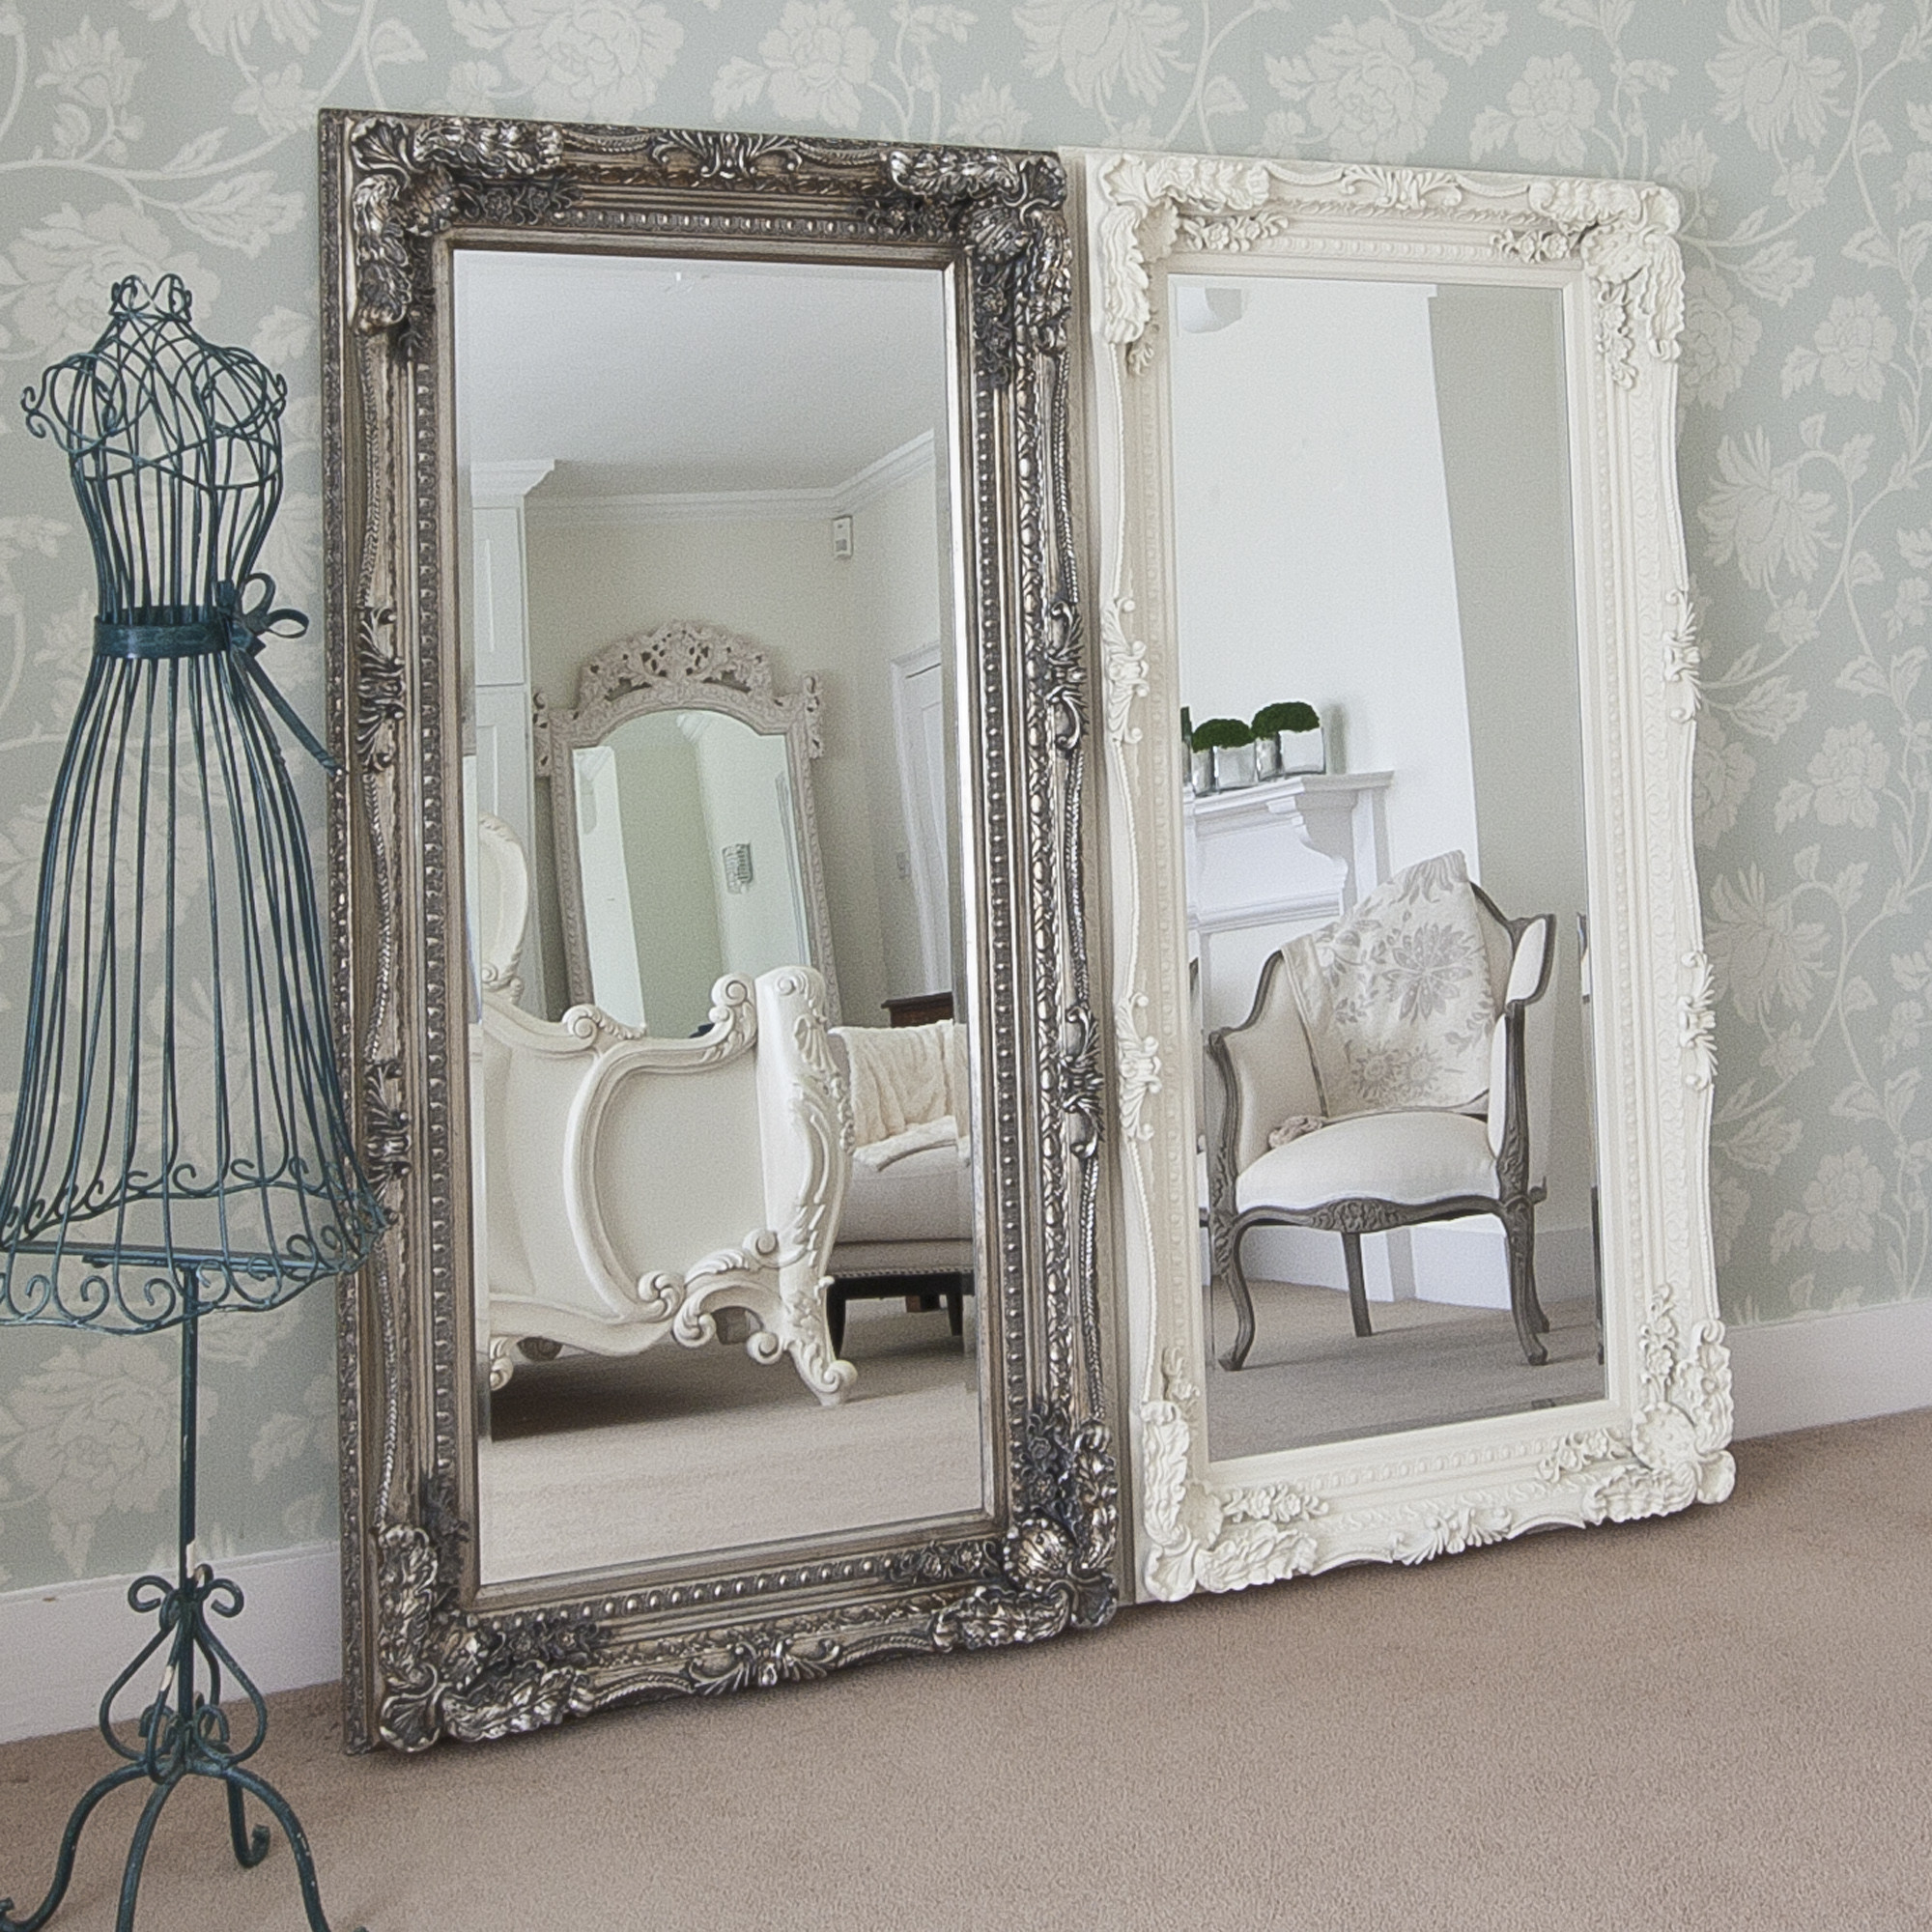 Best ideas about Shabby Chic Mirror . Save or Pin Full Length Mirrors Now.